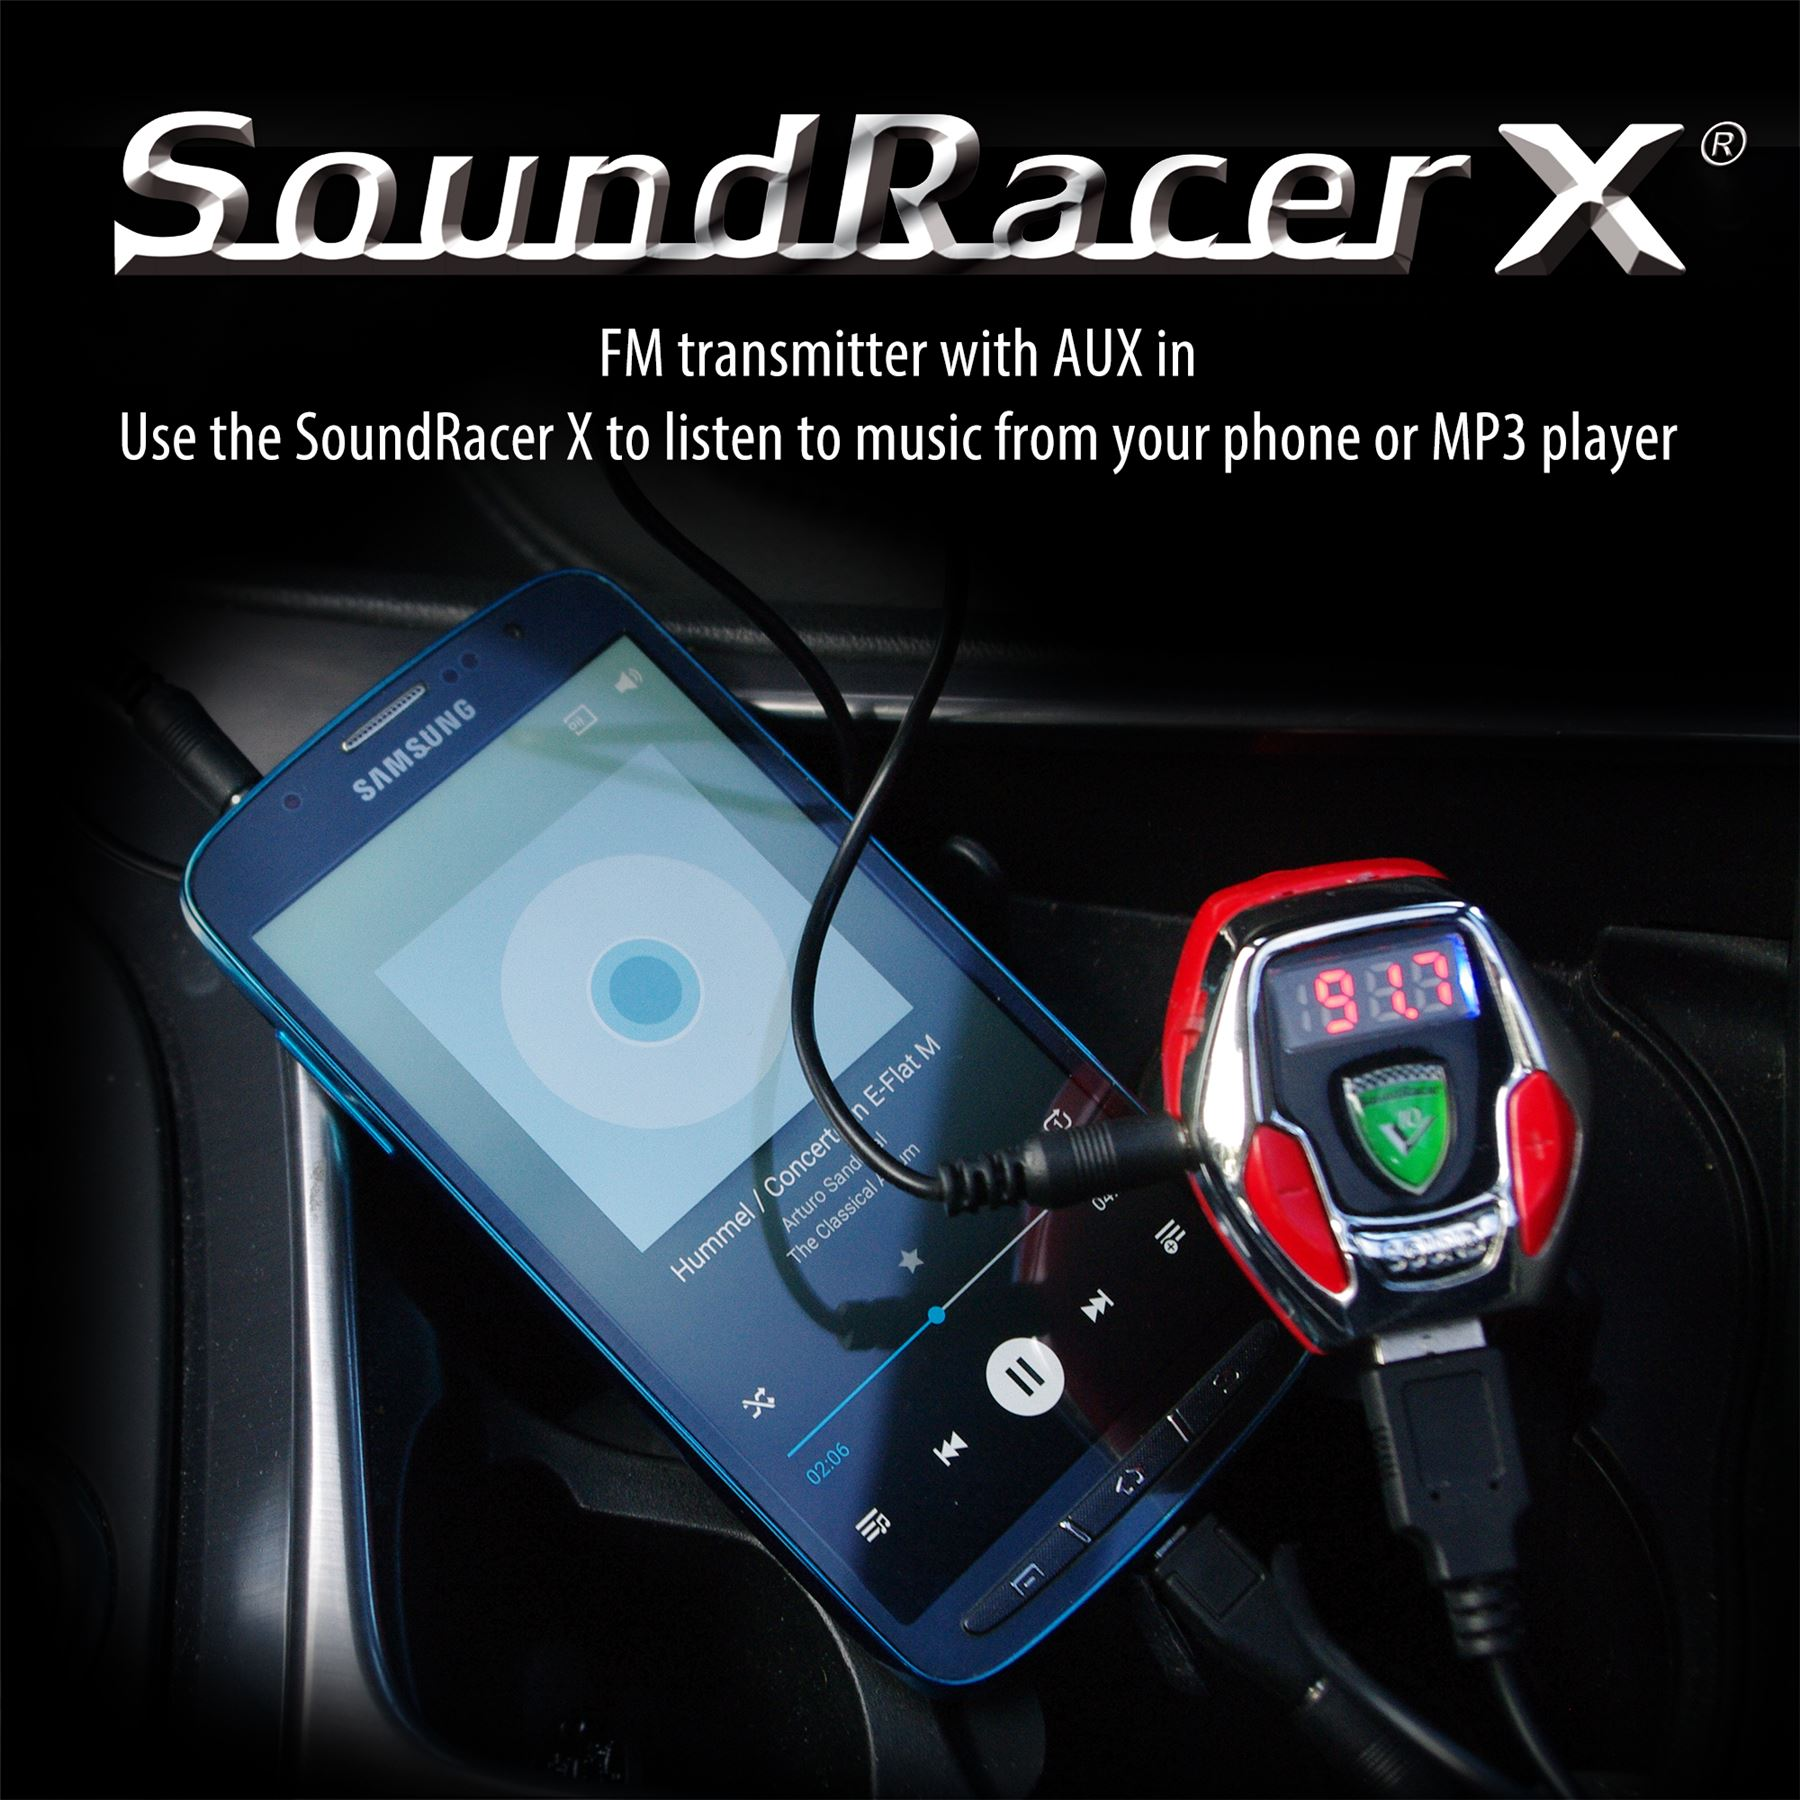 soundracer x kfz motor sound effekt fm transmitter mp3 aux. Black Bedroom Furniture Sets. Home Design Ideas